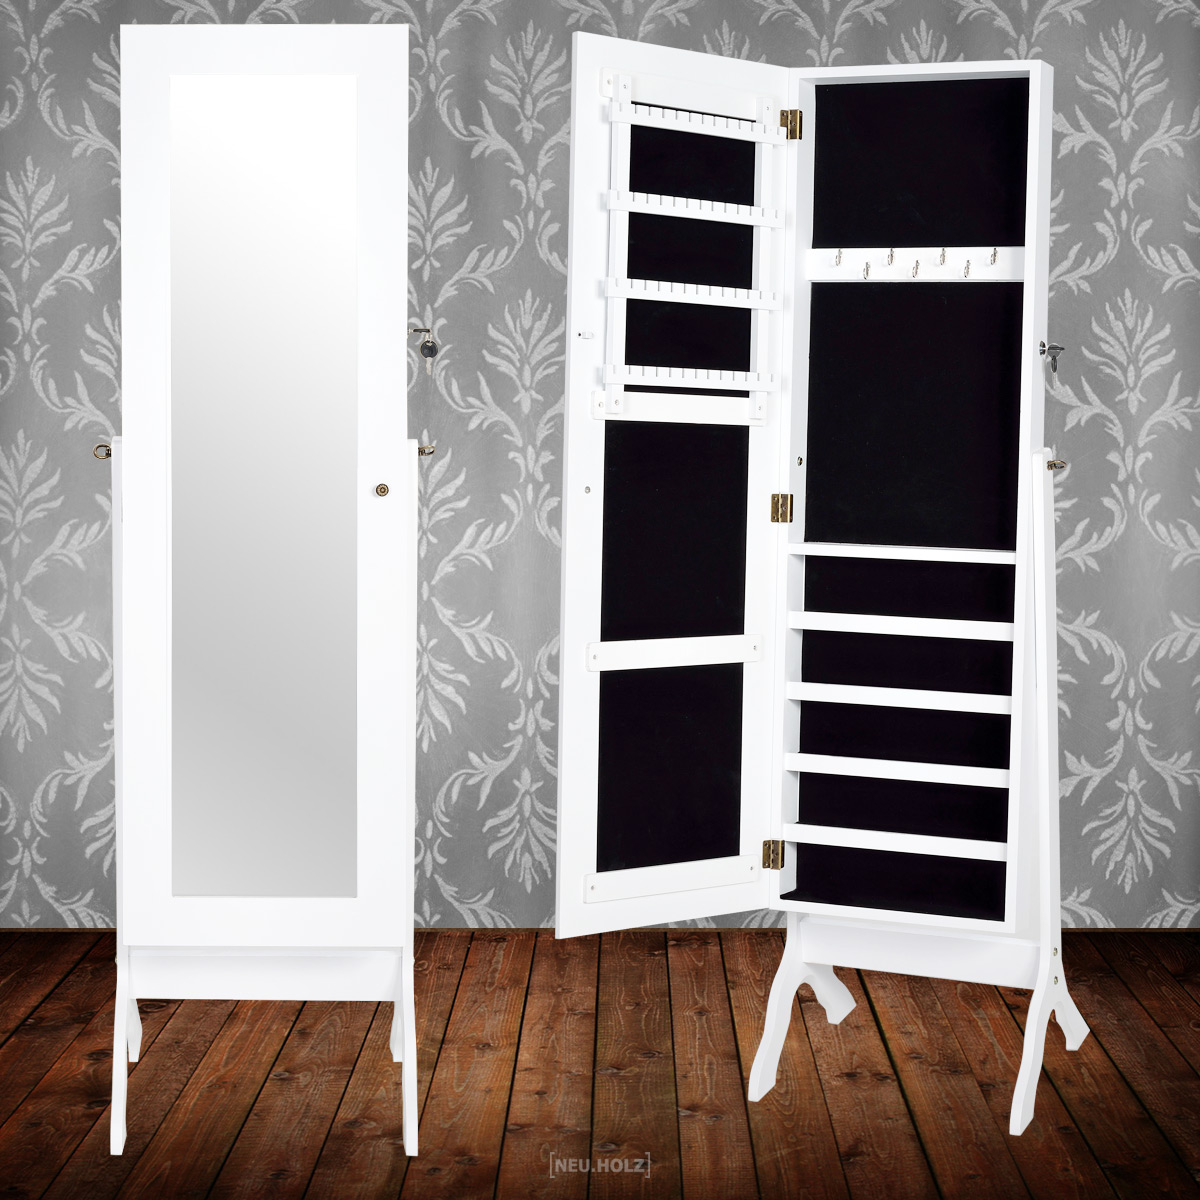 schmuckschrank frisierkommode kommode spiegel schminktisch kommode wei shabby ebay. Black Bedroom Furniture Sets. Home Design Ideas